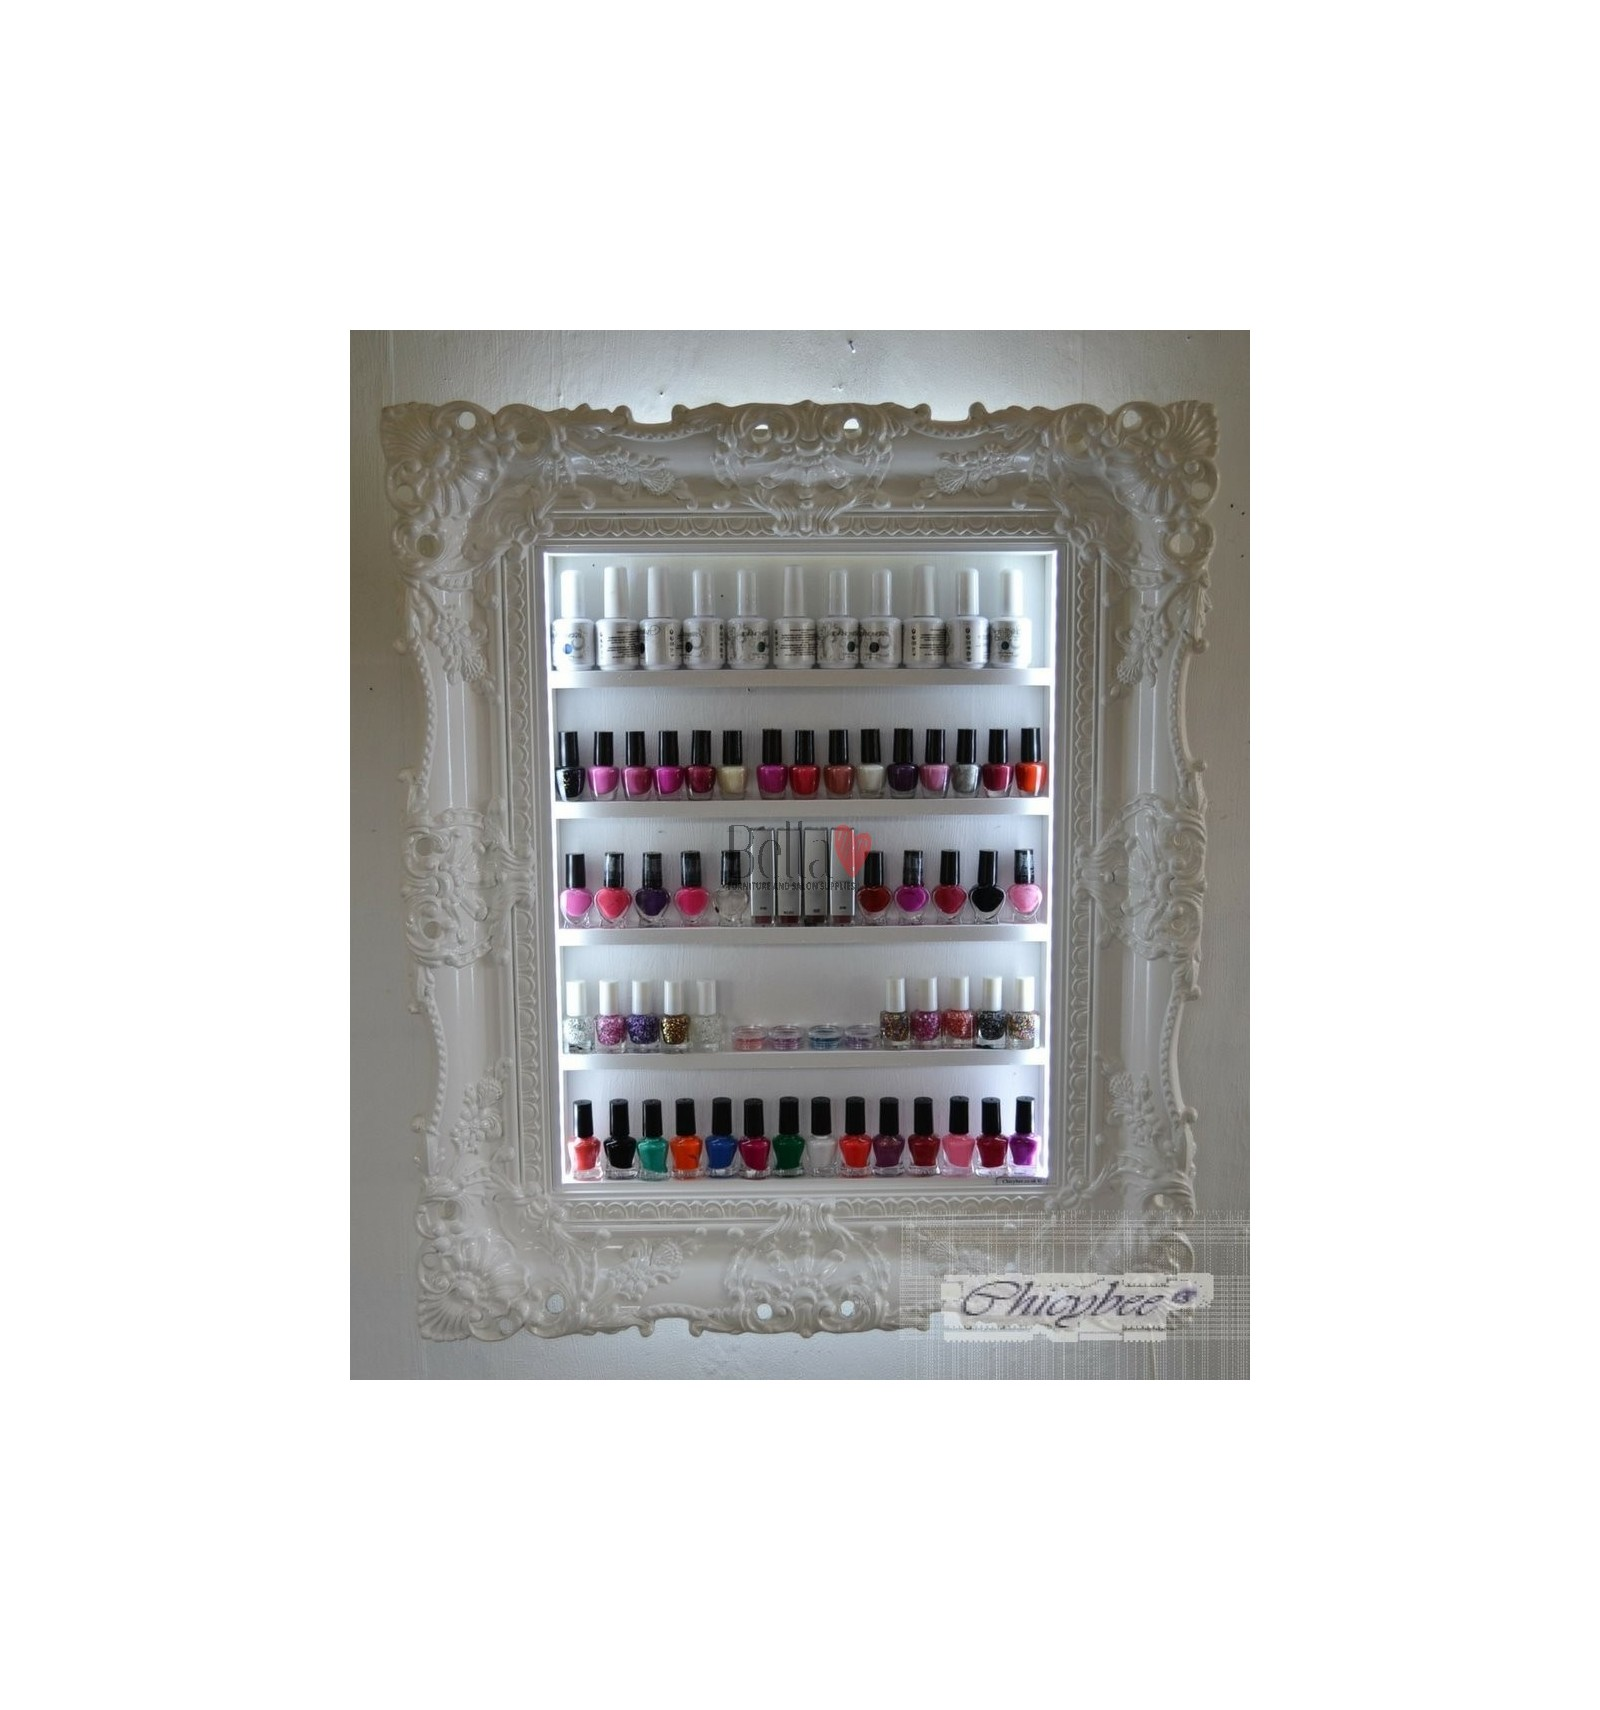 nail polish display frame white display frame for nail salon. Black Bedroom Furniture Sets. Home Design Ideas